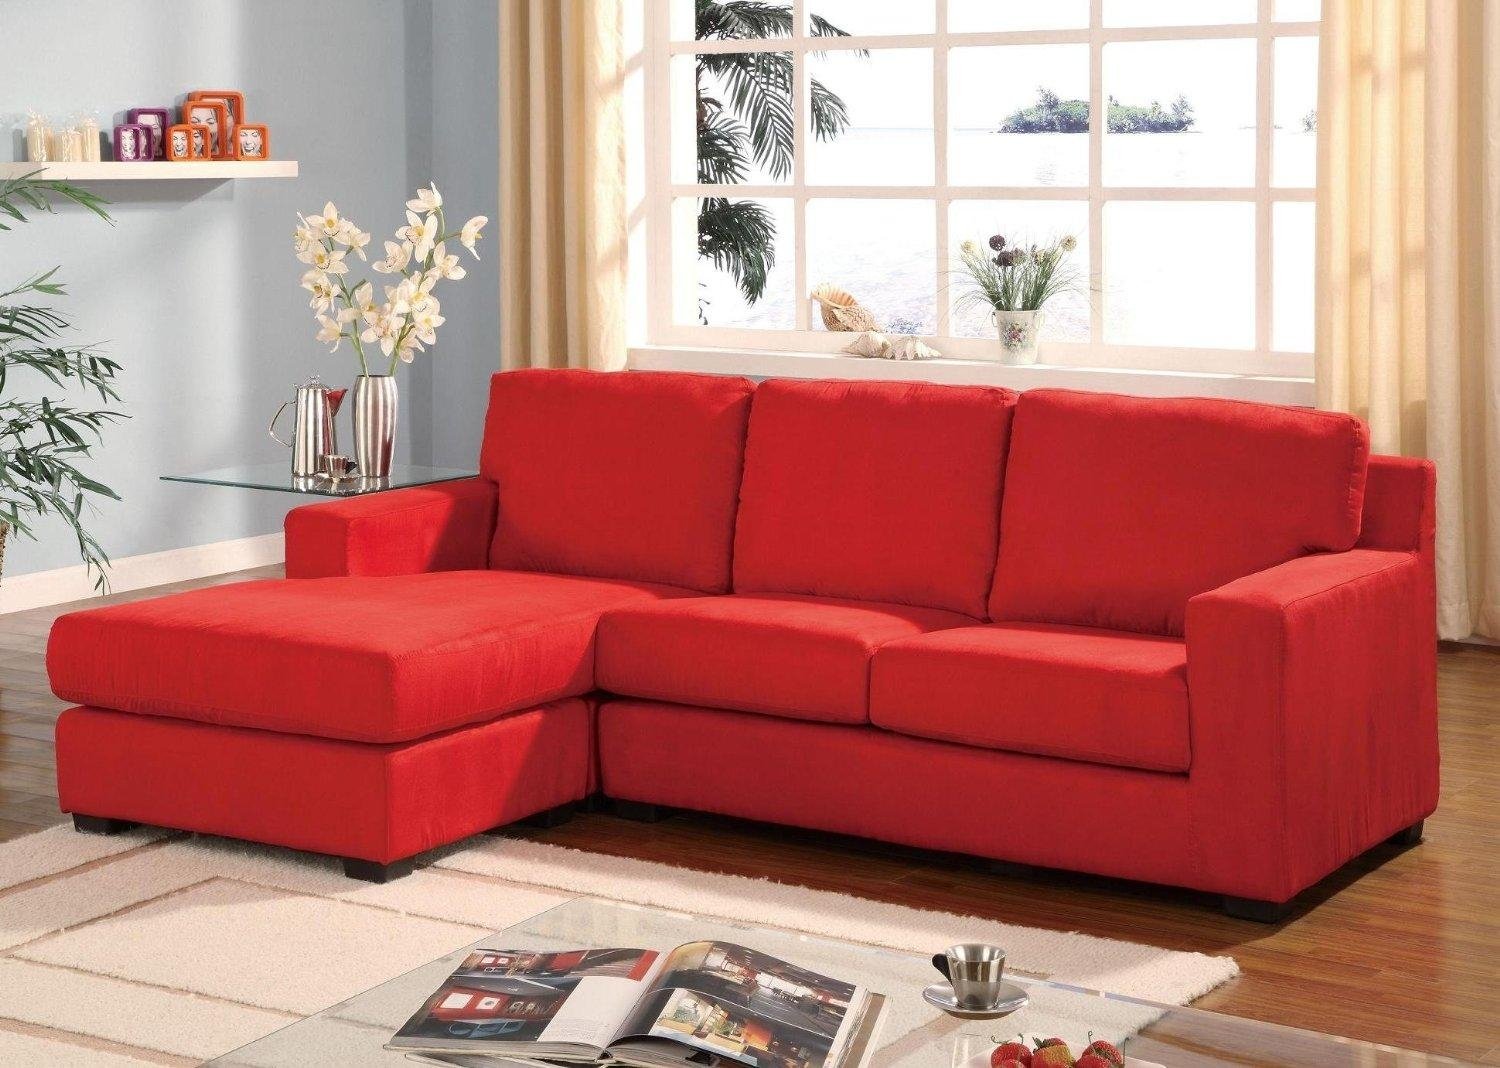 Red Sectional Sofa Decorating Ideas | Centerfieldbar Within Red Sectional Sleeper Sofas (Image 10 of 22)